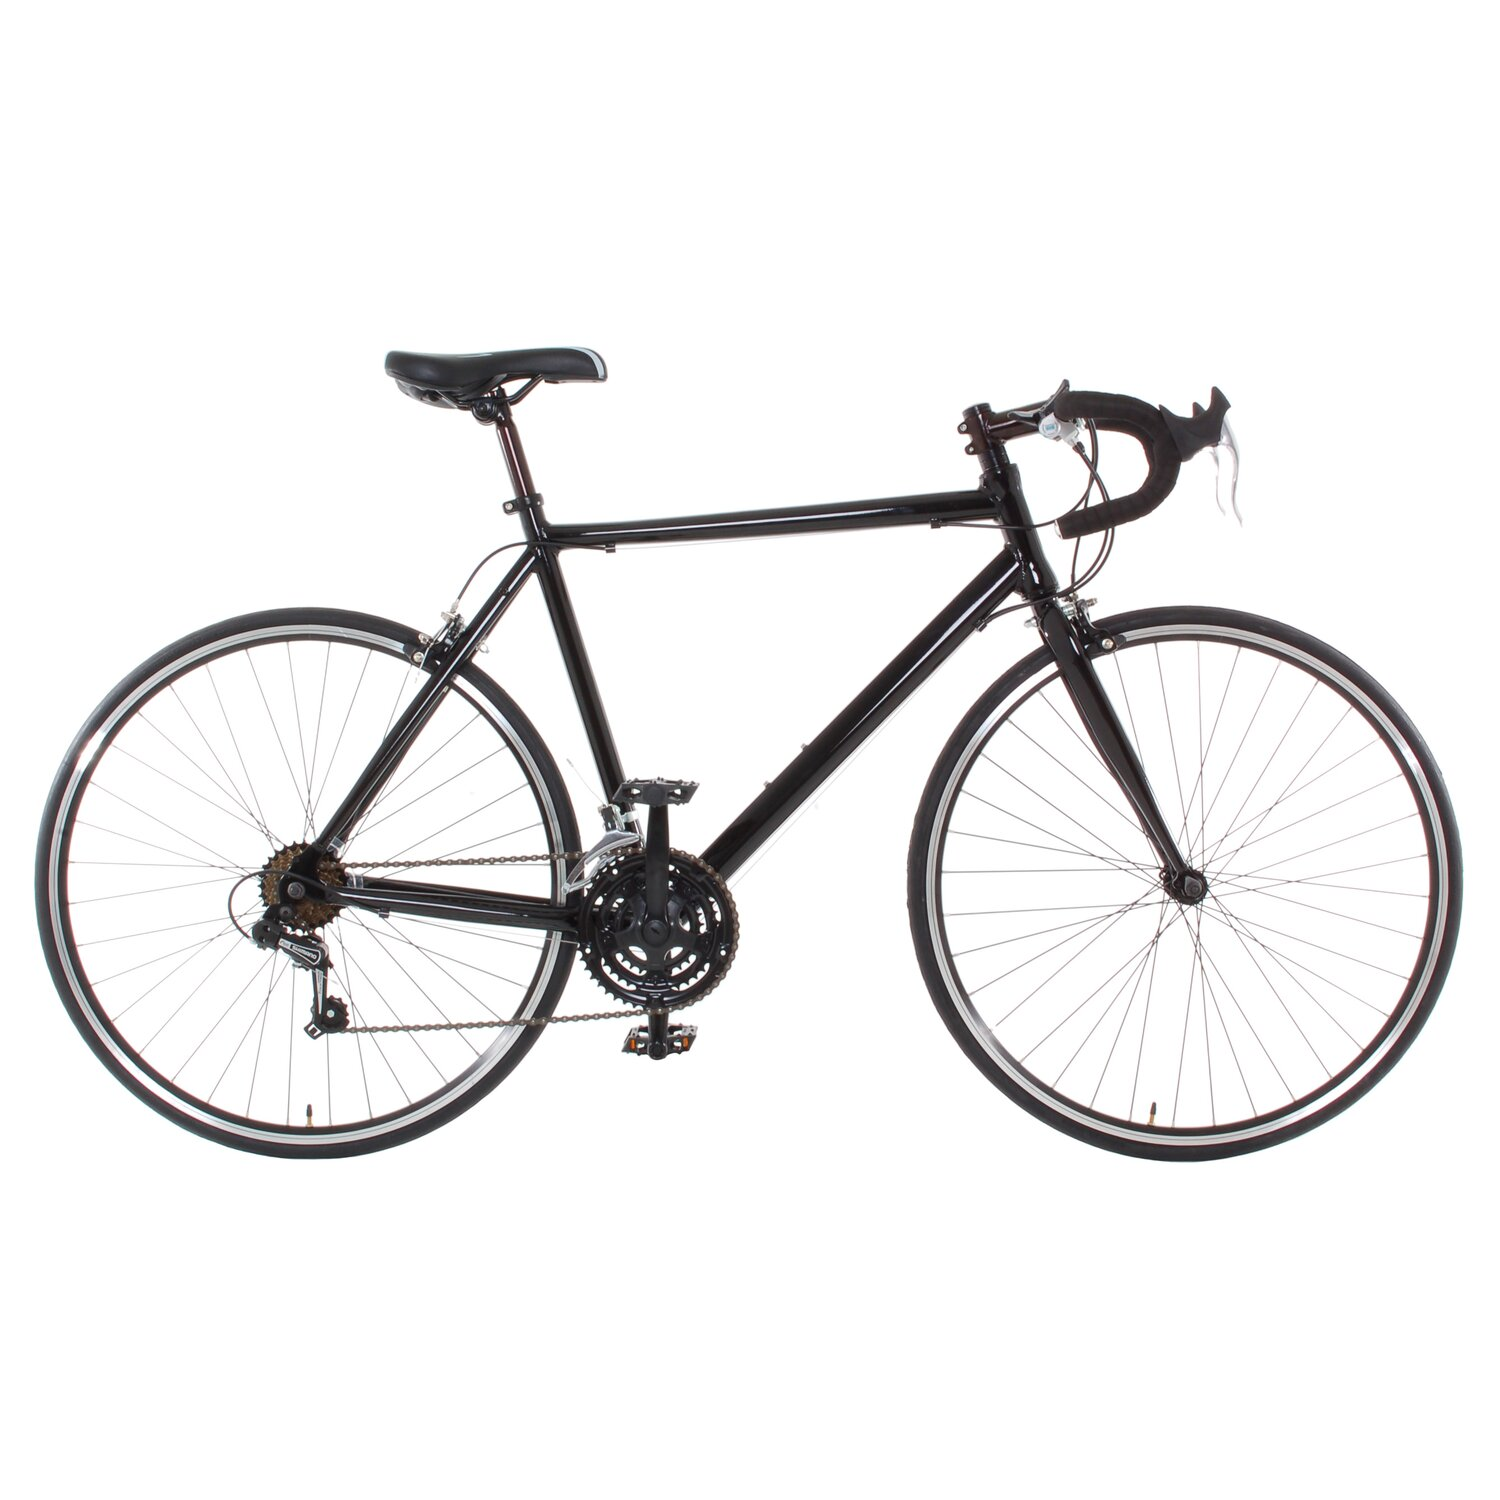 Bikes For Men Over 6'2 Men s Road Bike Commuter